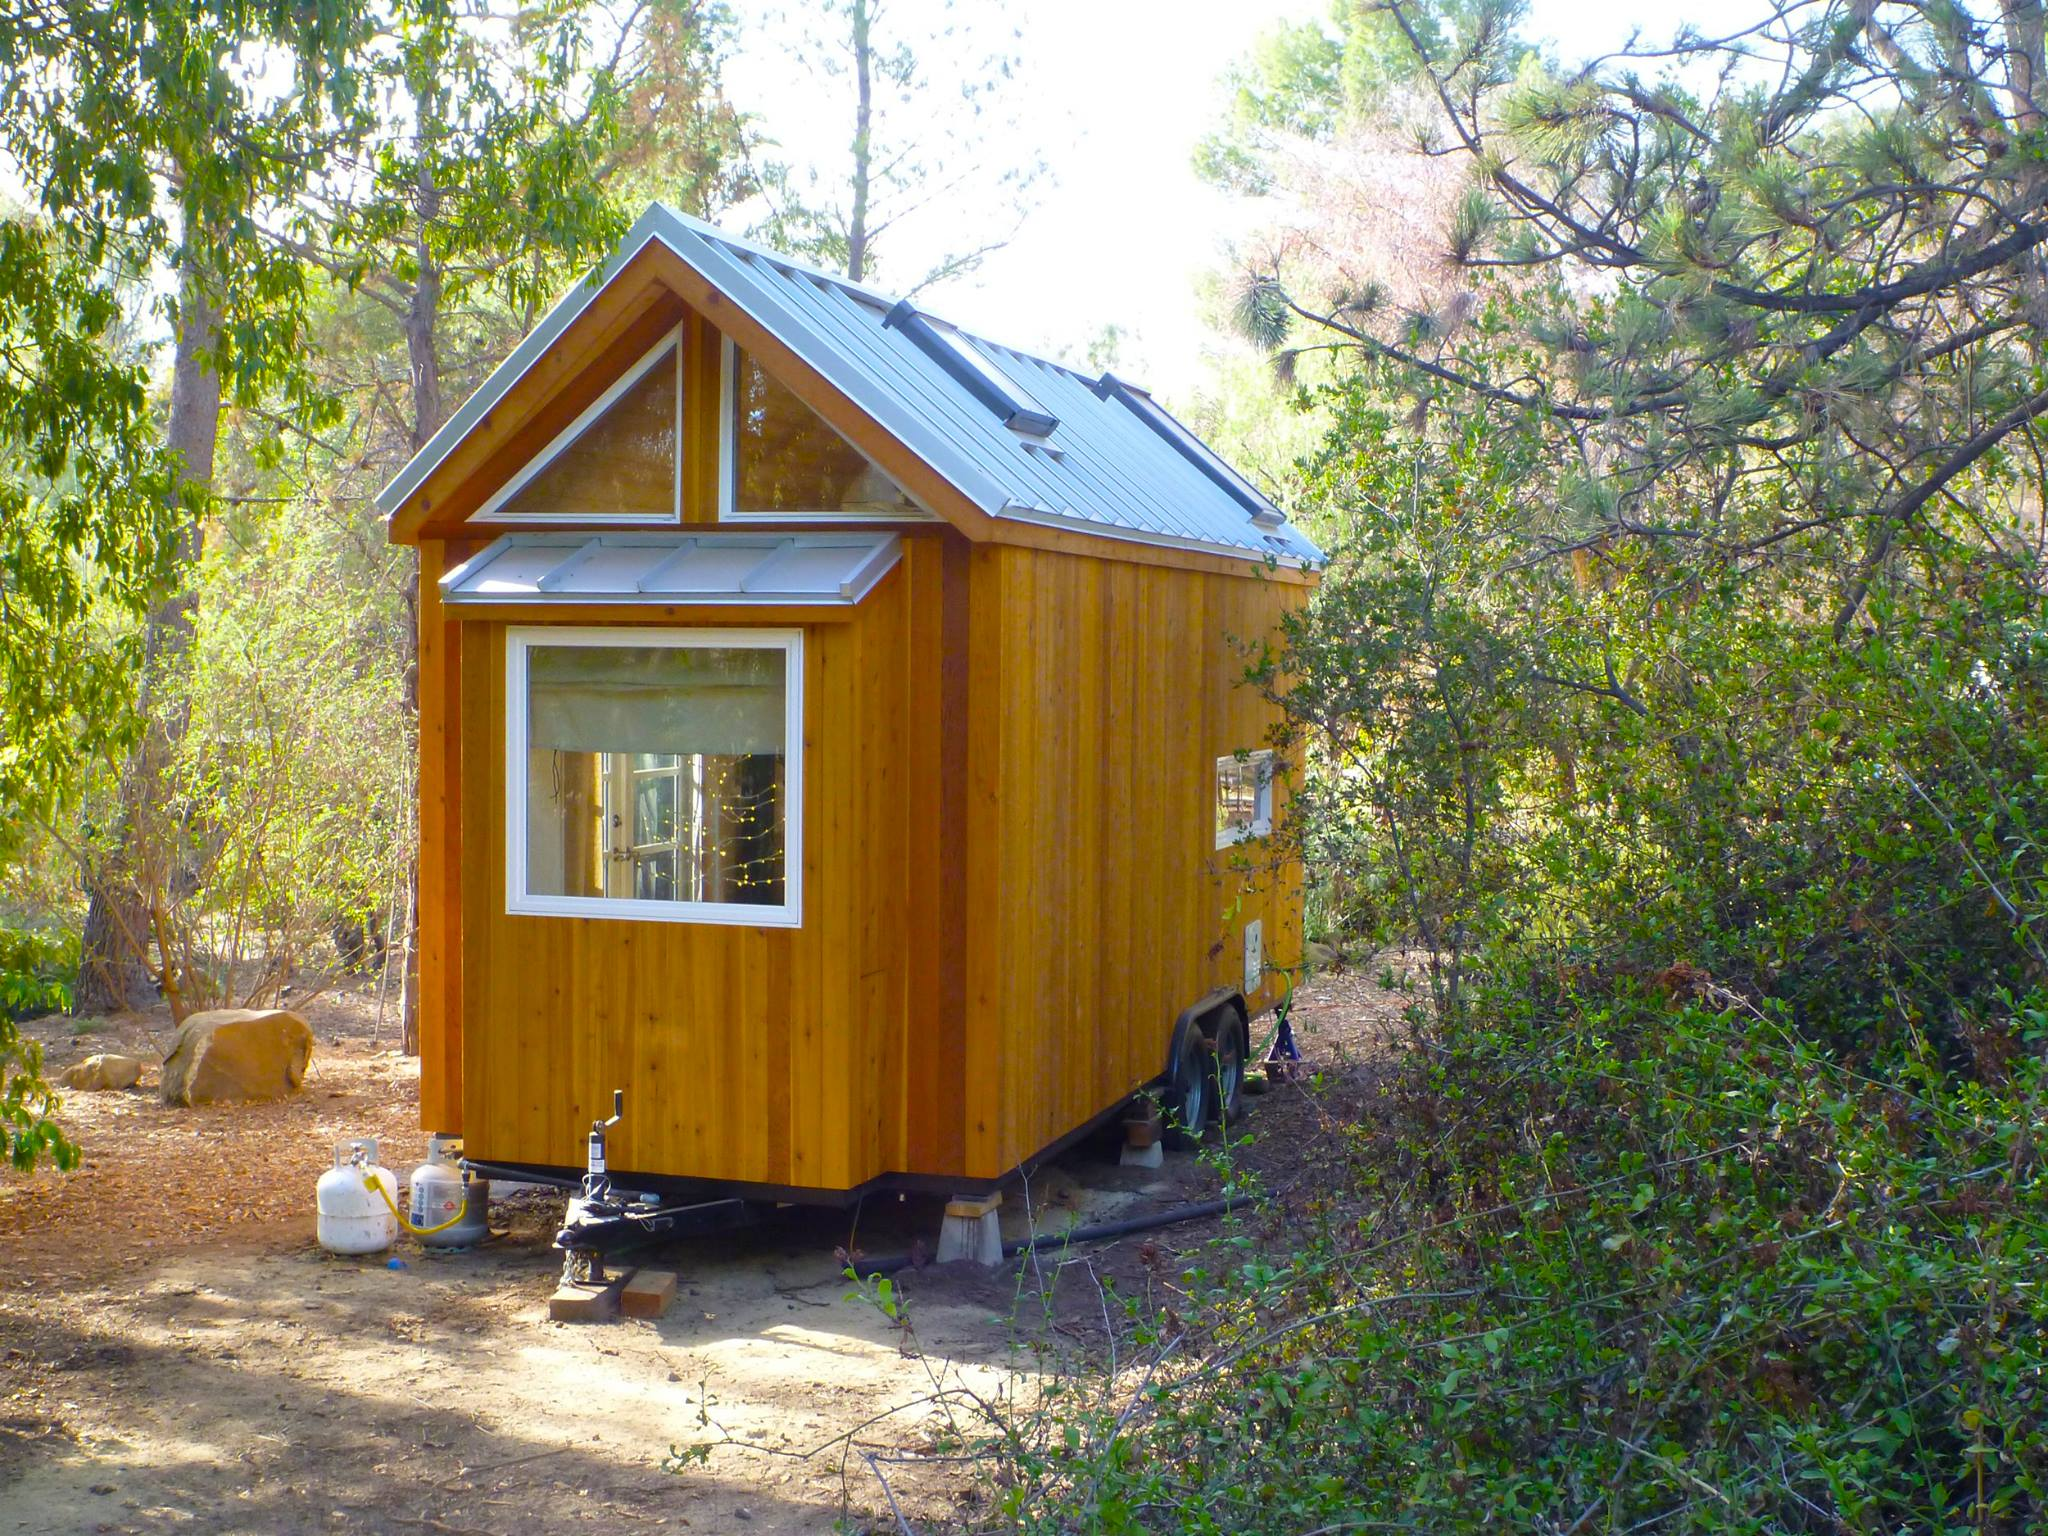 vinas-tiny-house-8